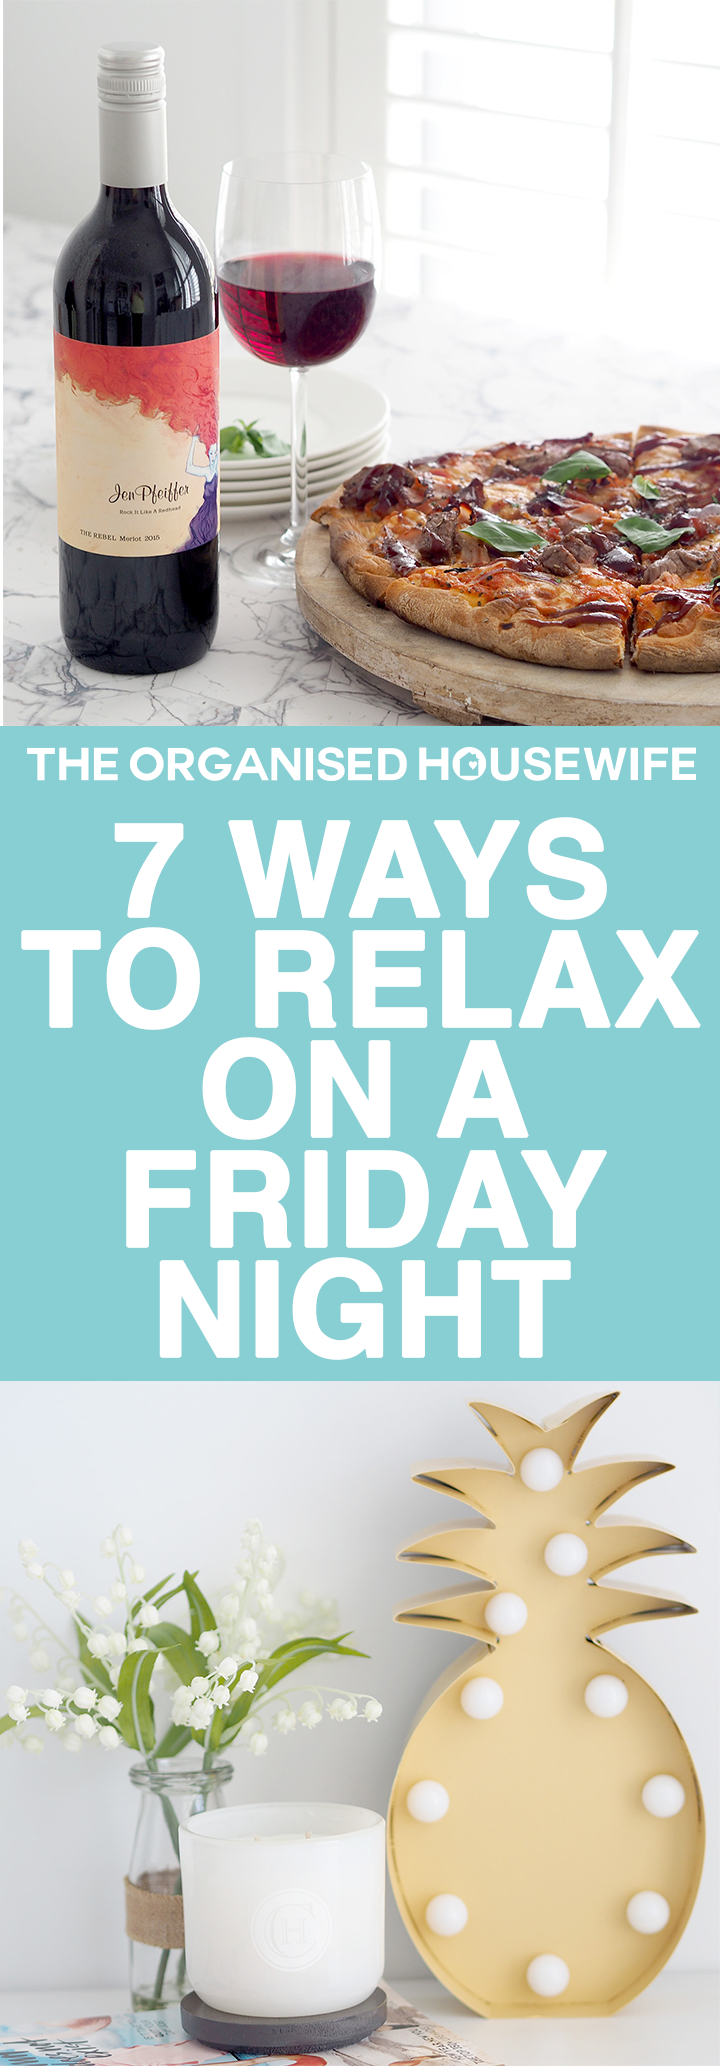 This list of ways to relax on a Friday night will help you unwind after a busy week and before the craziness of the weekend begins. Getting the housework out of the way, easy dinner ideas and spending time with family, my kind of Friday afternoon!